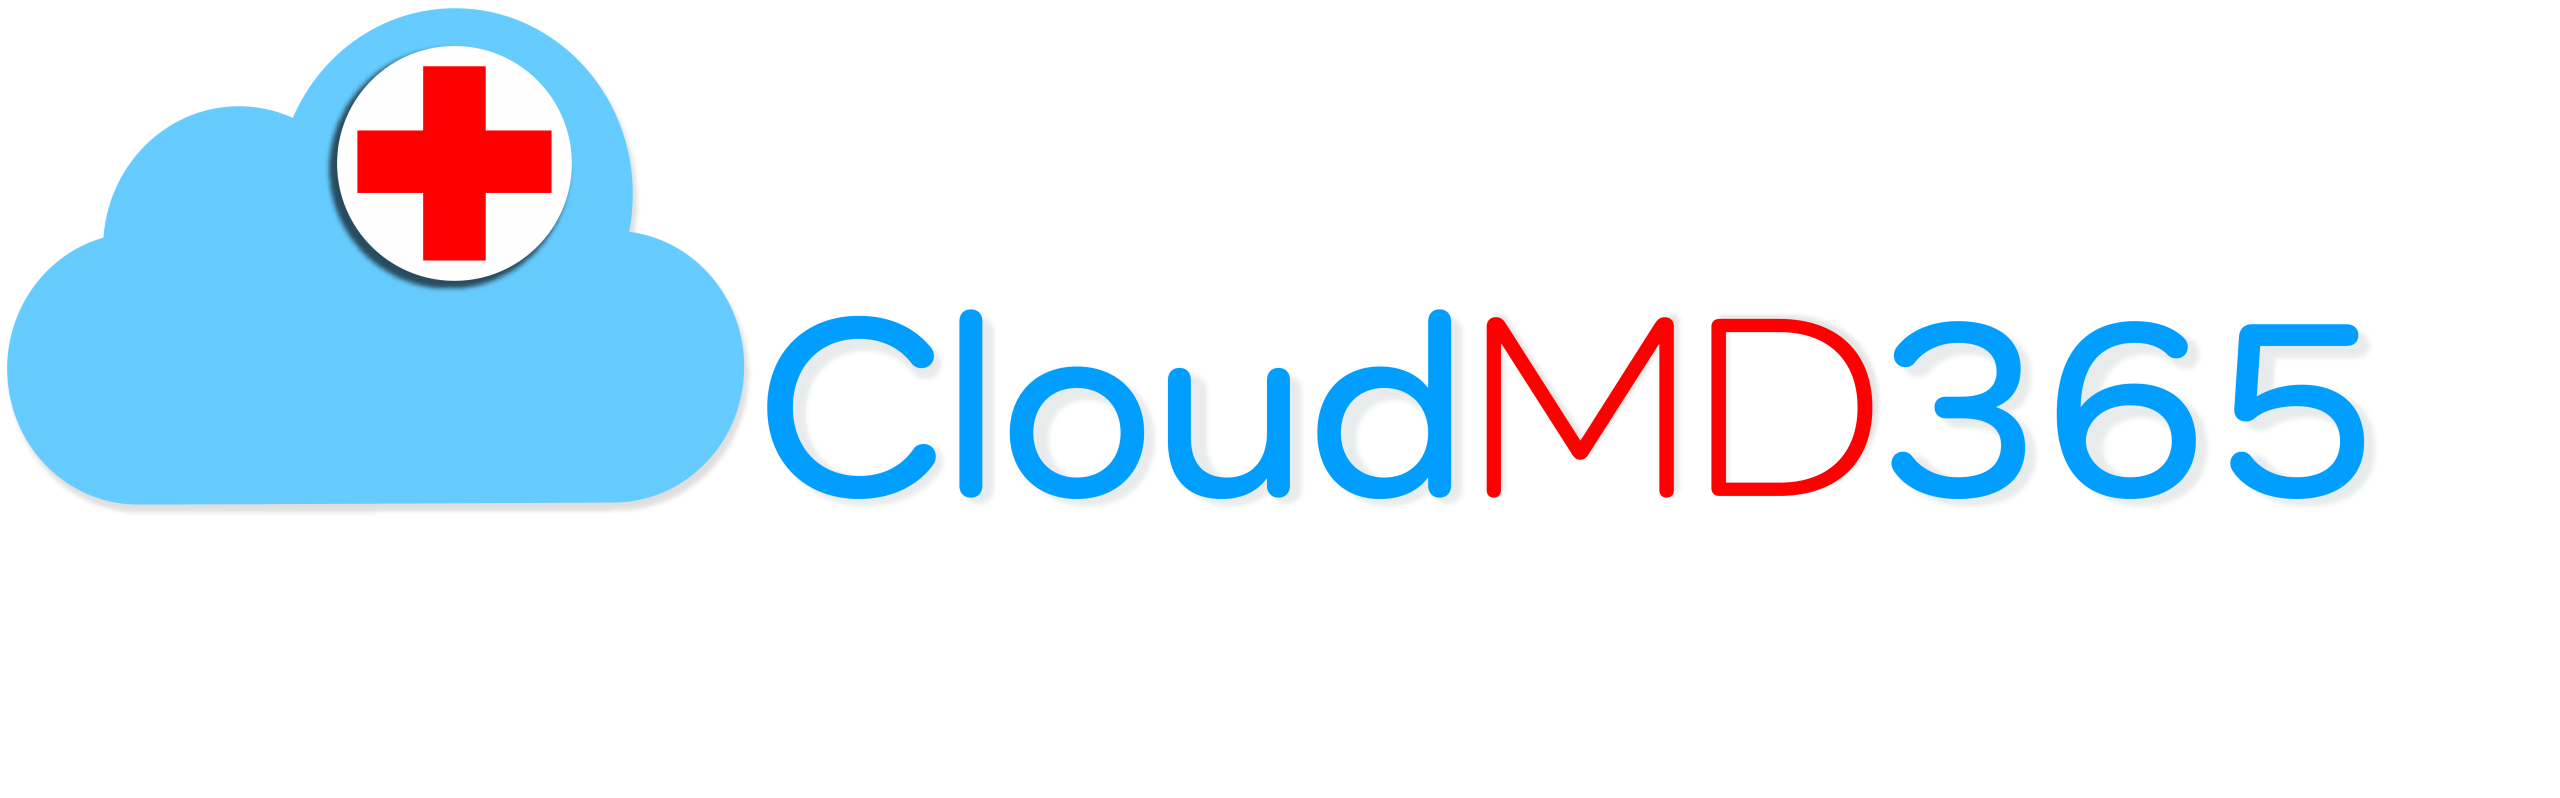 cloudmd_newest_simply_connecting_LOGO_2-LIGHT-02